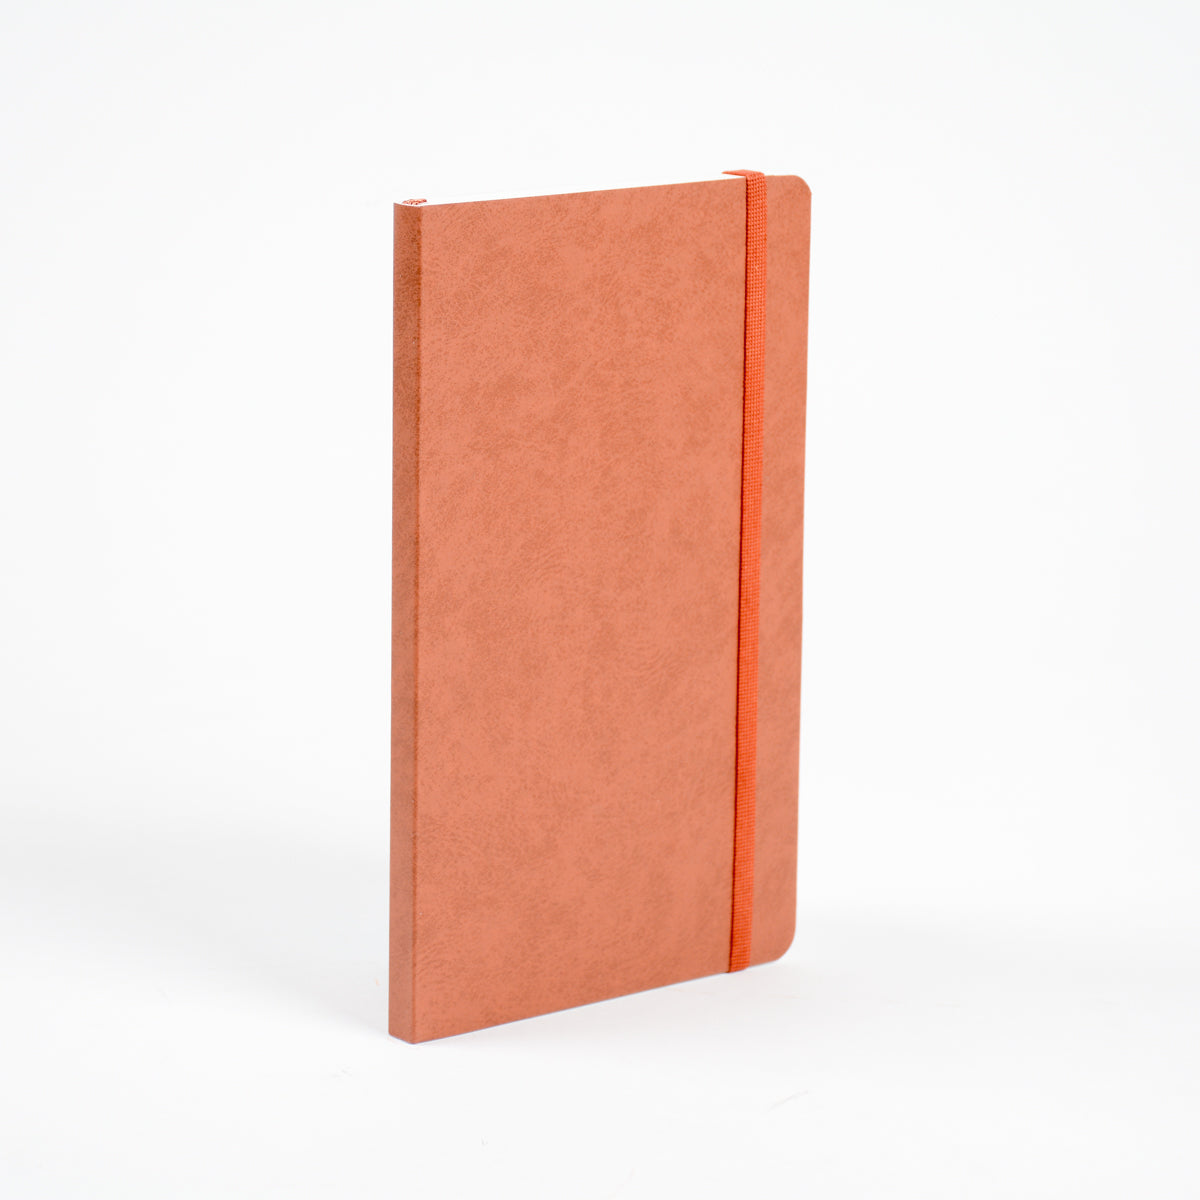 https://www.letternote.com/collections/classic-notebooks